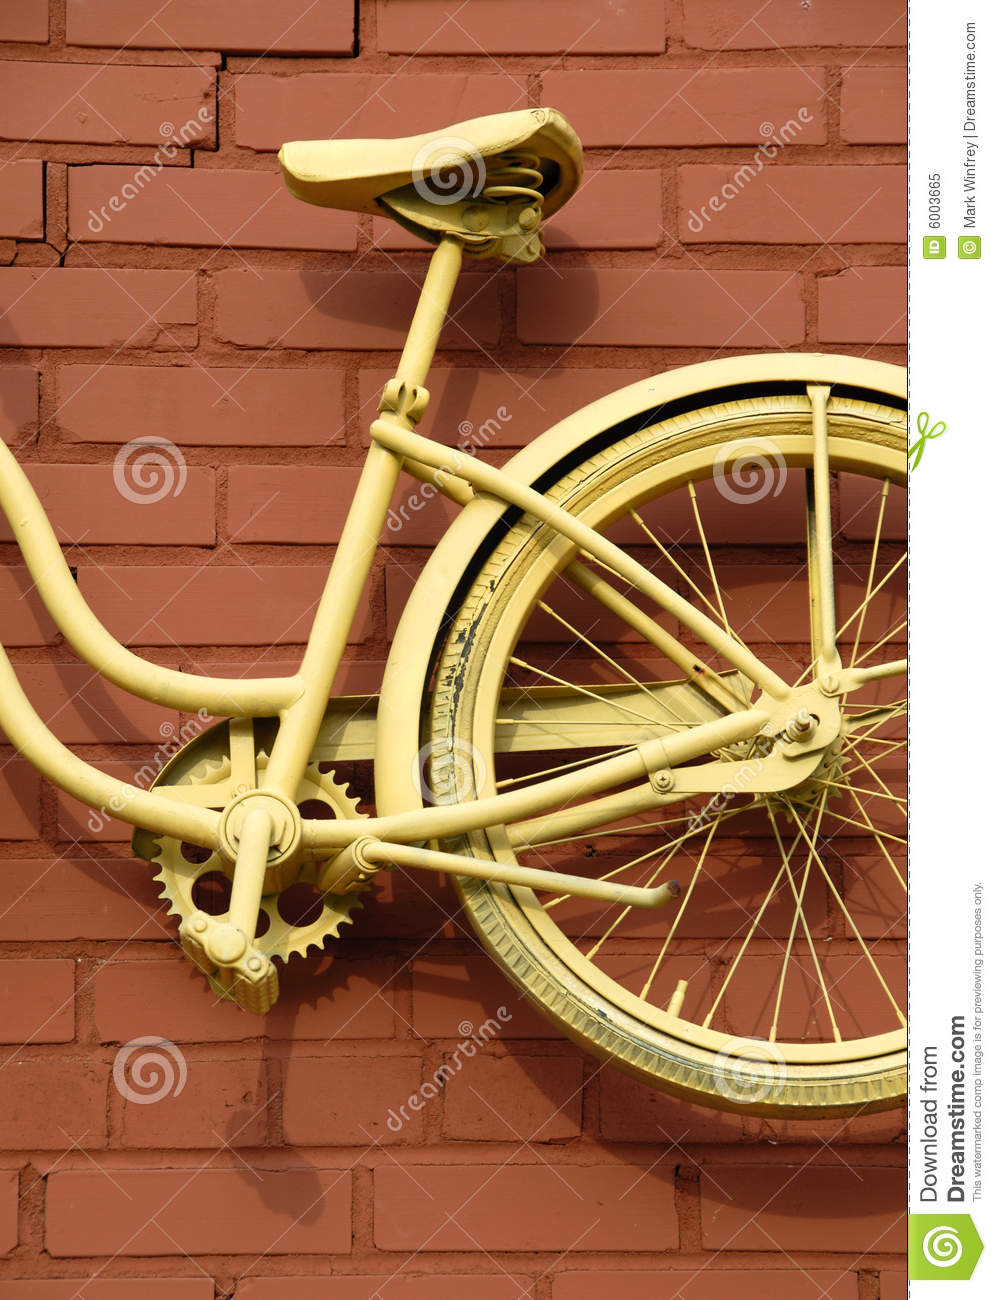 Download Bicycle Abstract stock image. Image of yellow, frame, spokes - 6003665